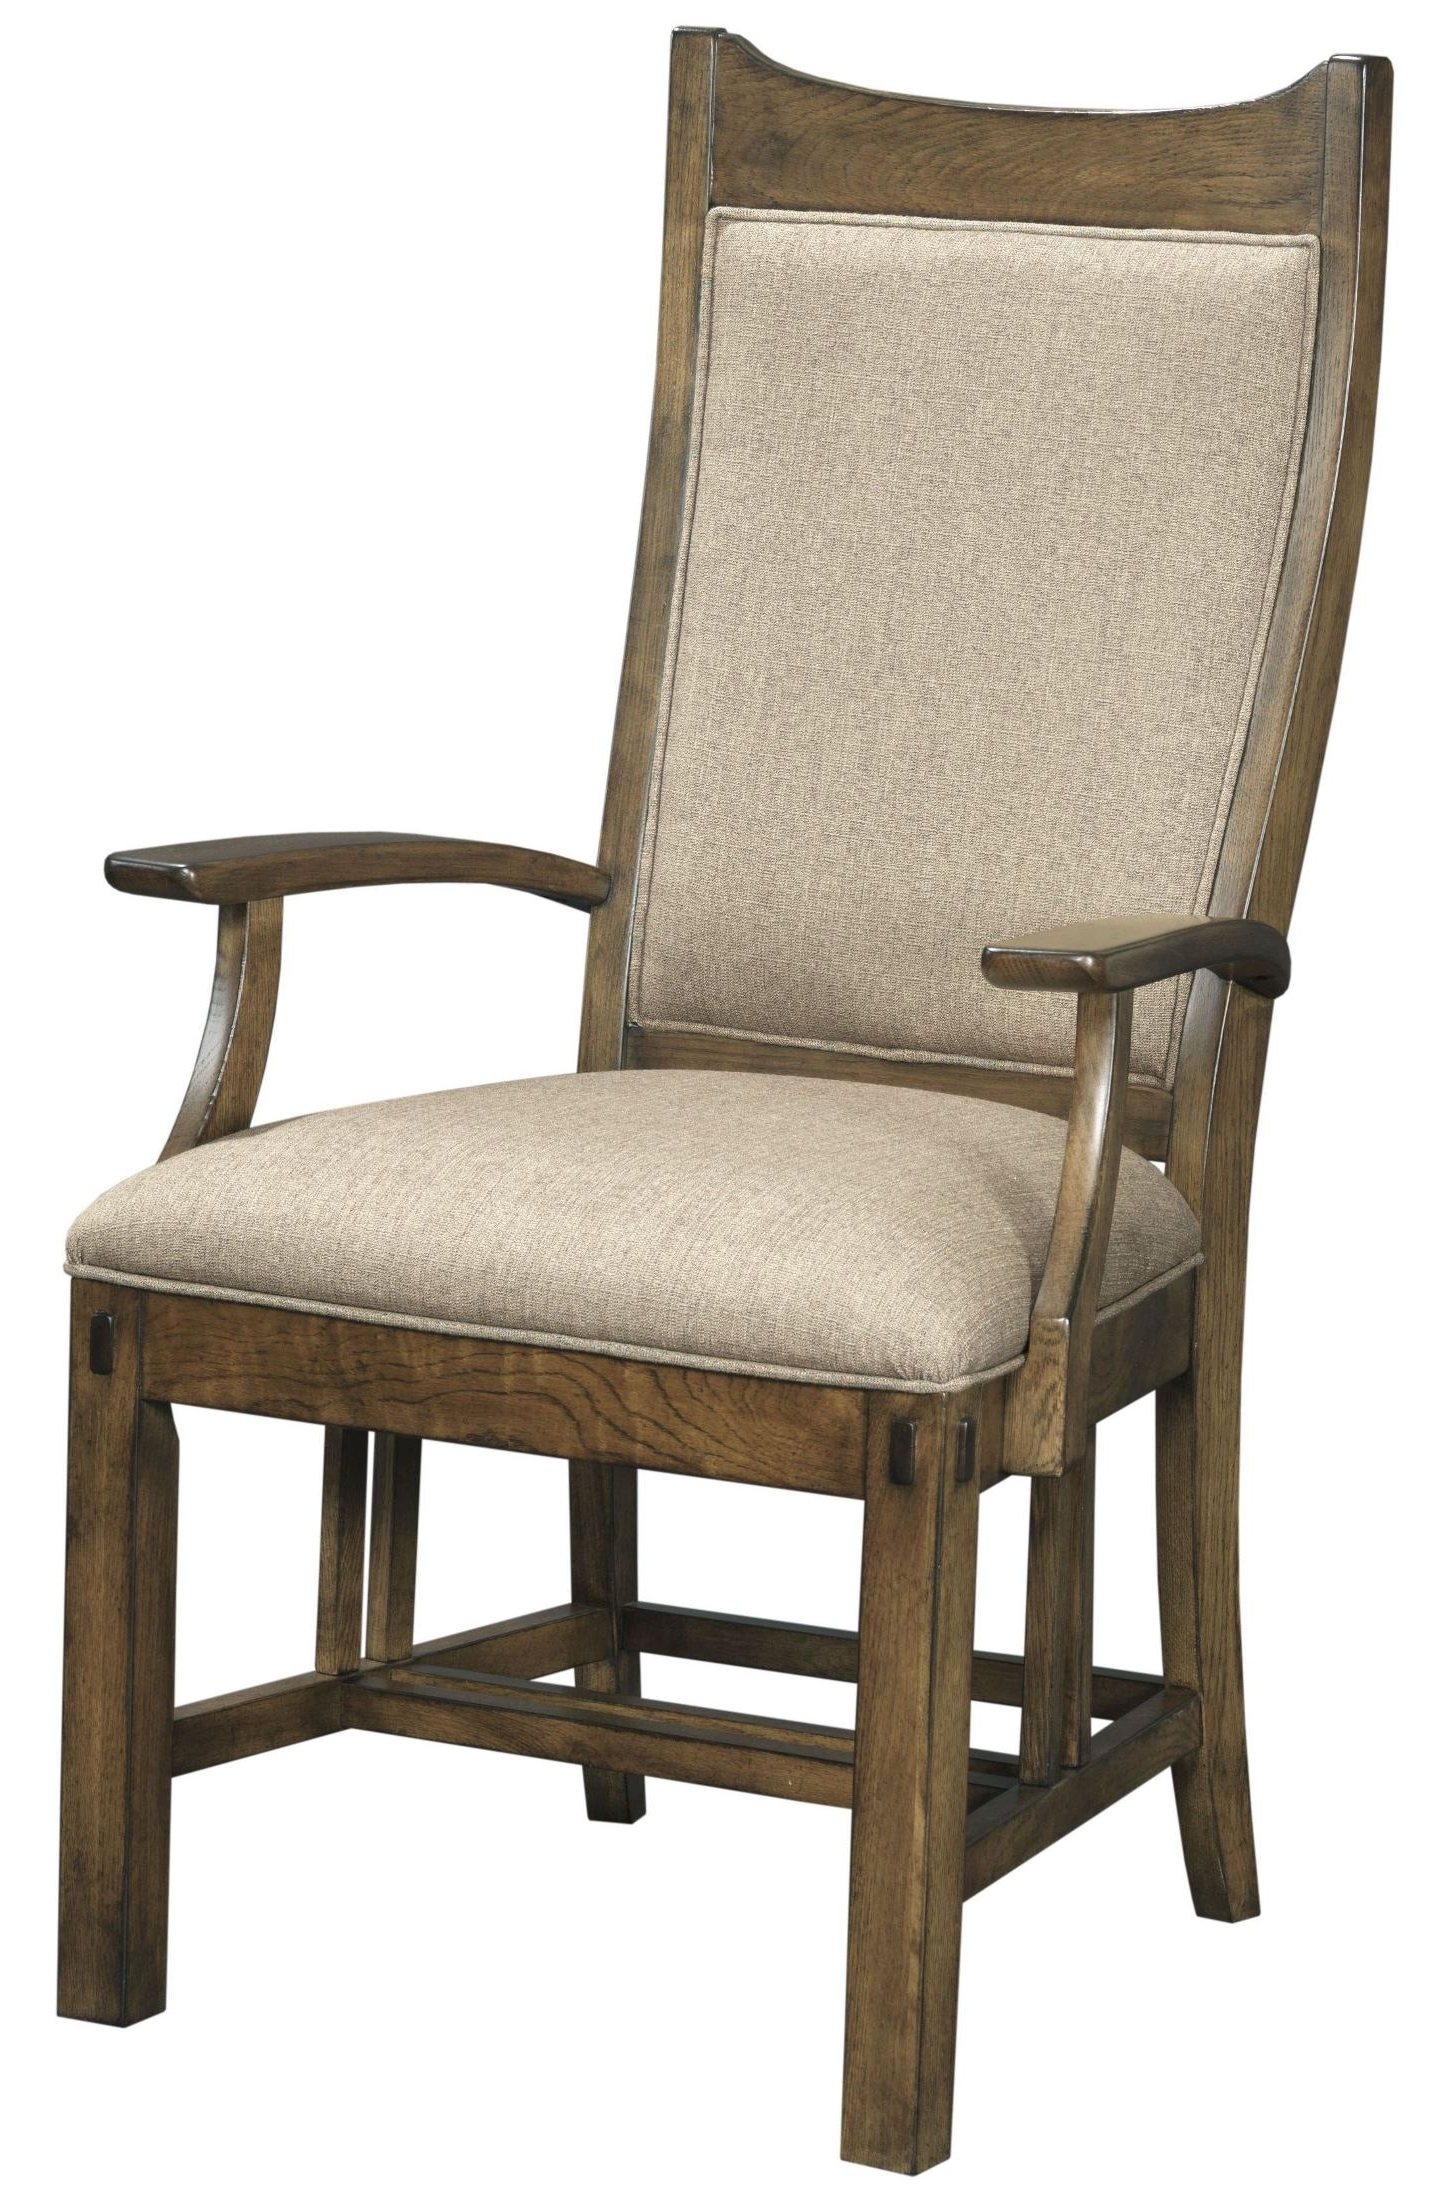 Fashionable Jaipur Beach Side Chair Set Of 2 From Largo (View 19 of 20)